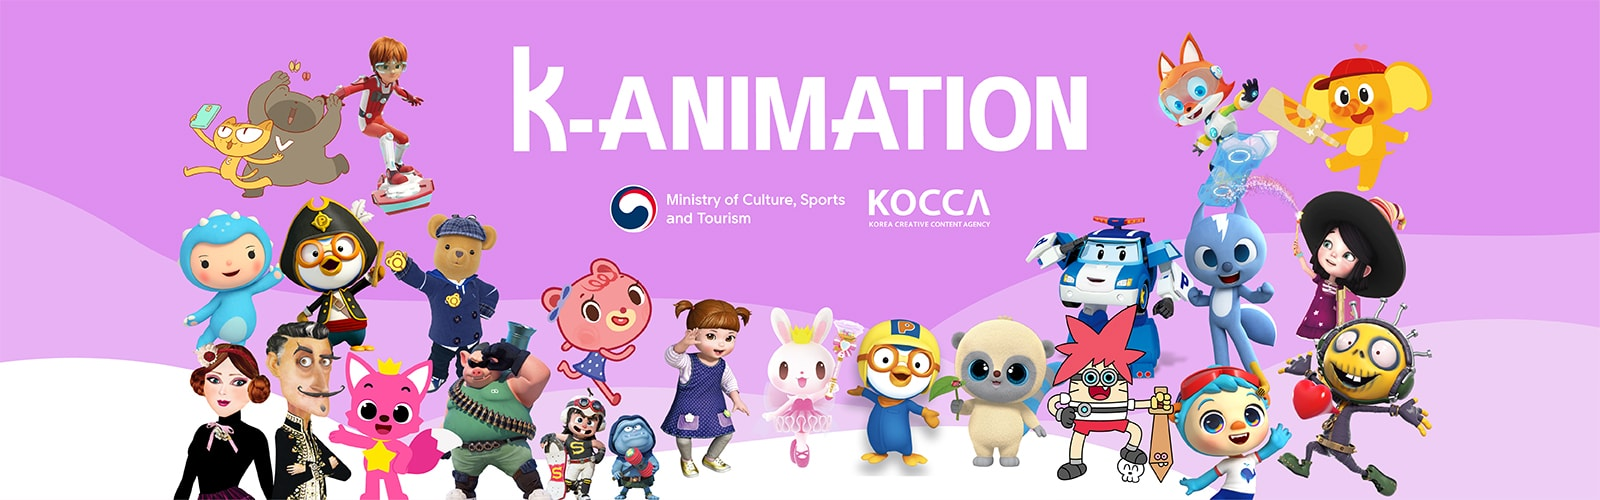 KOCCA Creative Content Agency - Animation